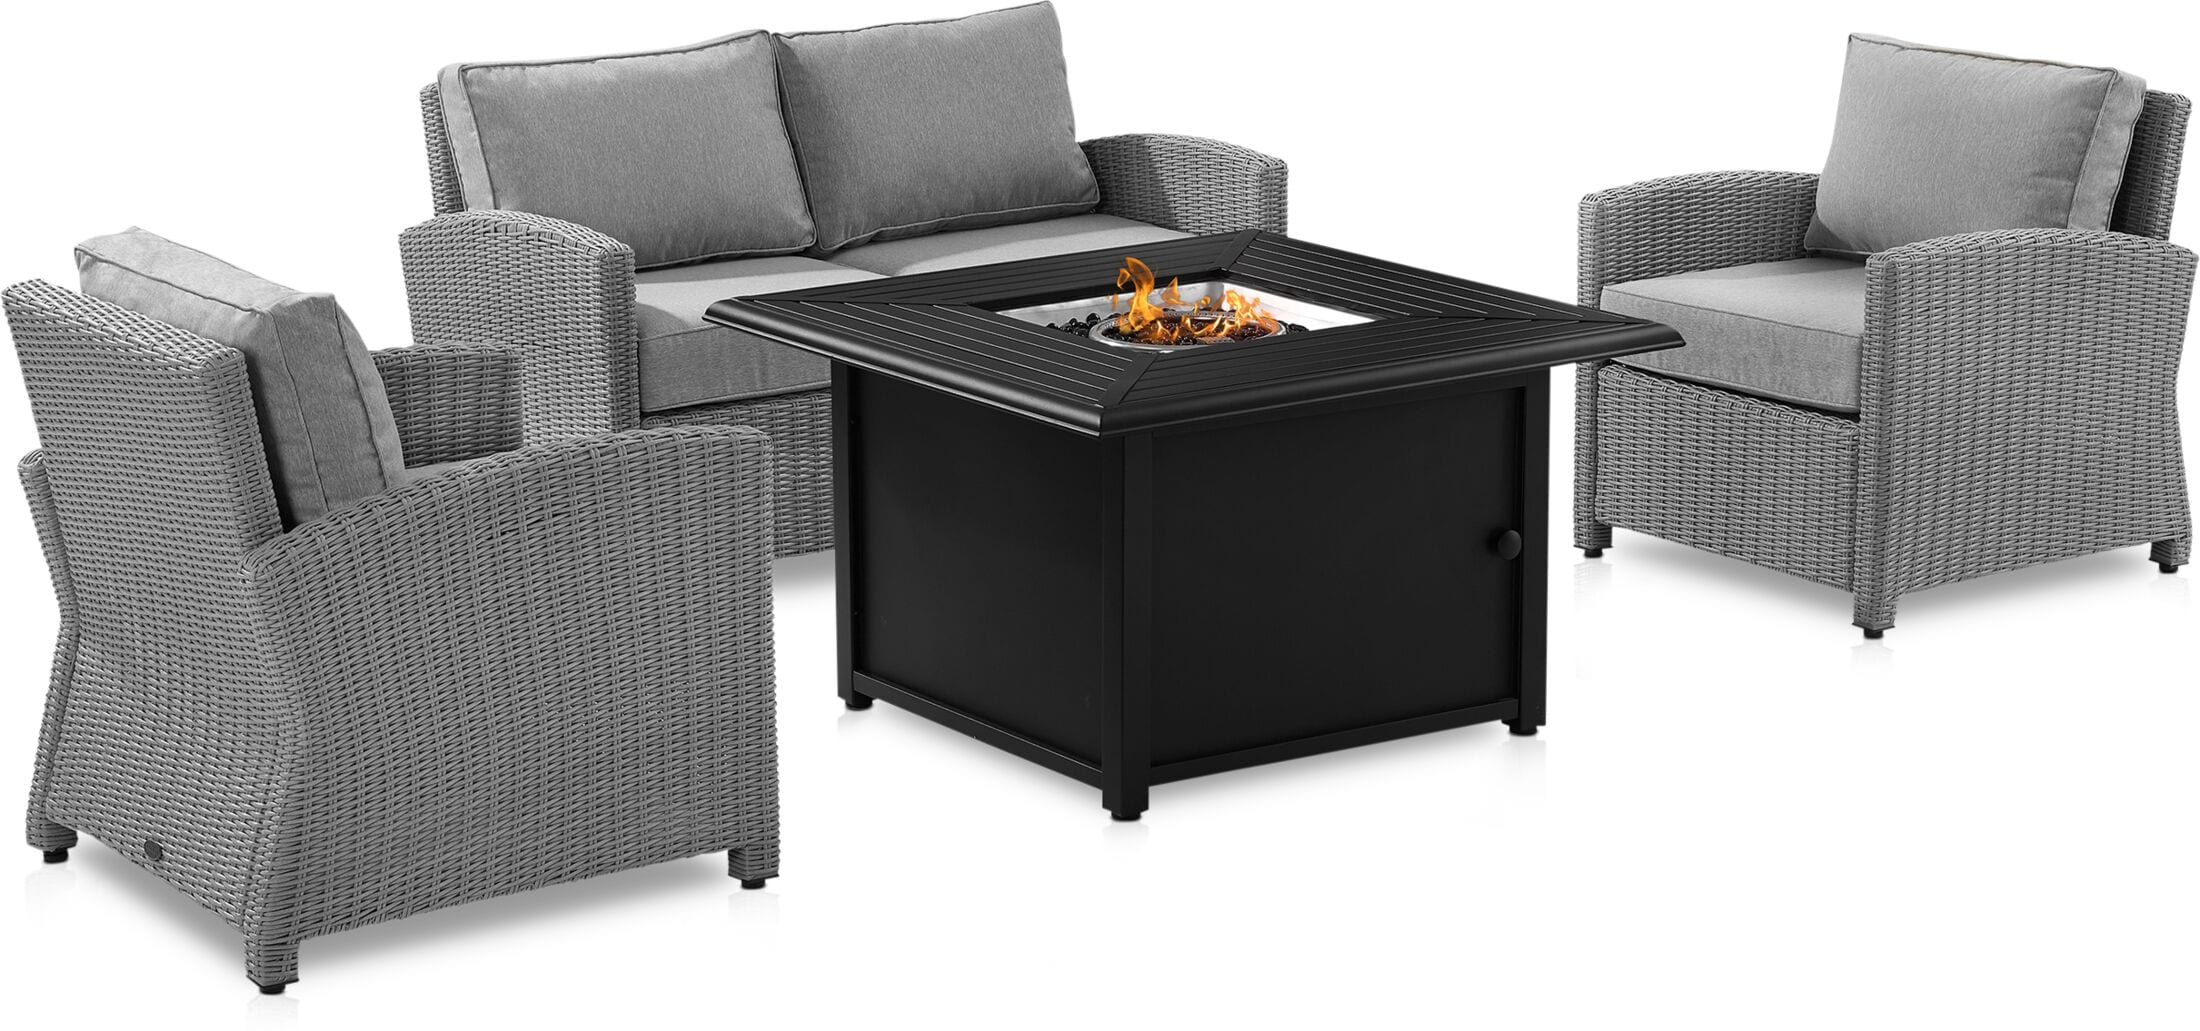 Outdoor Furniture - Destin Outdoor Loveseat, 2 Chairs, and Tybee Fire Table Set